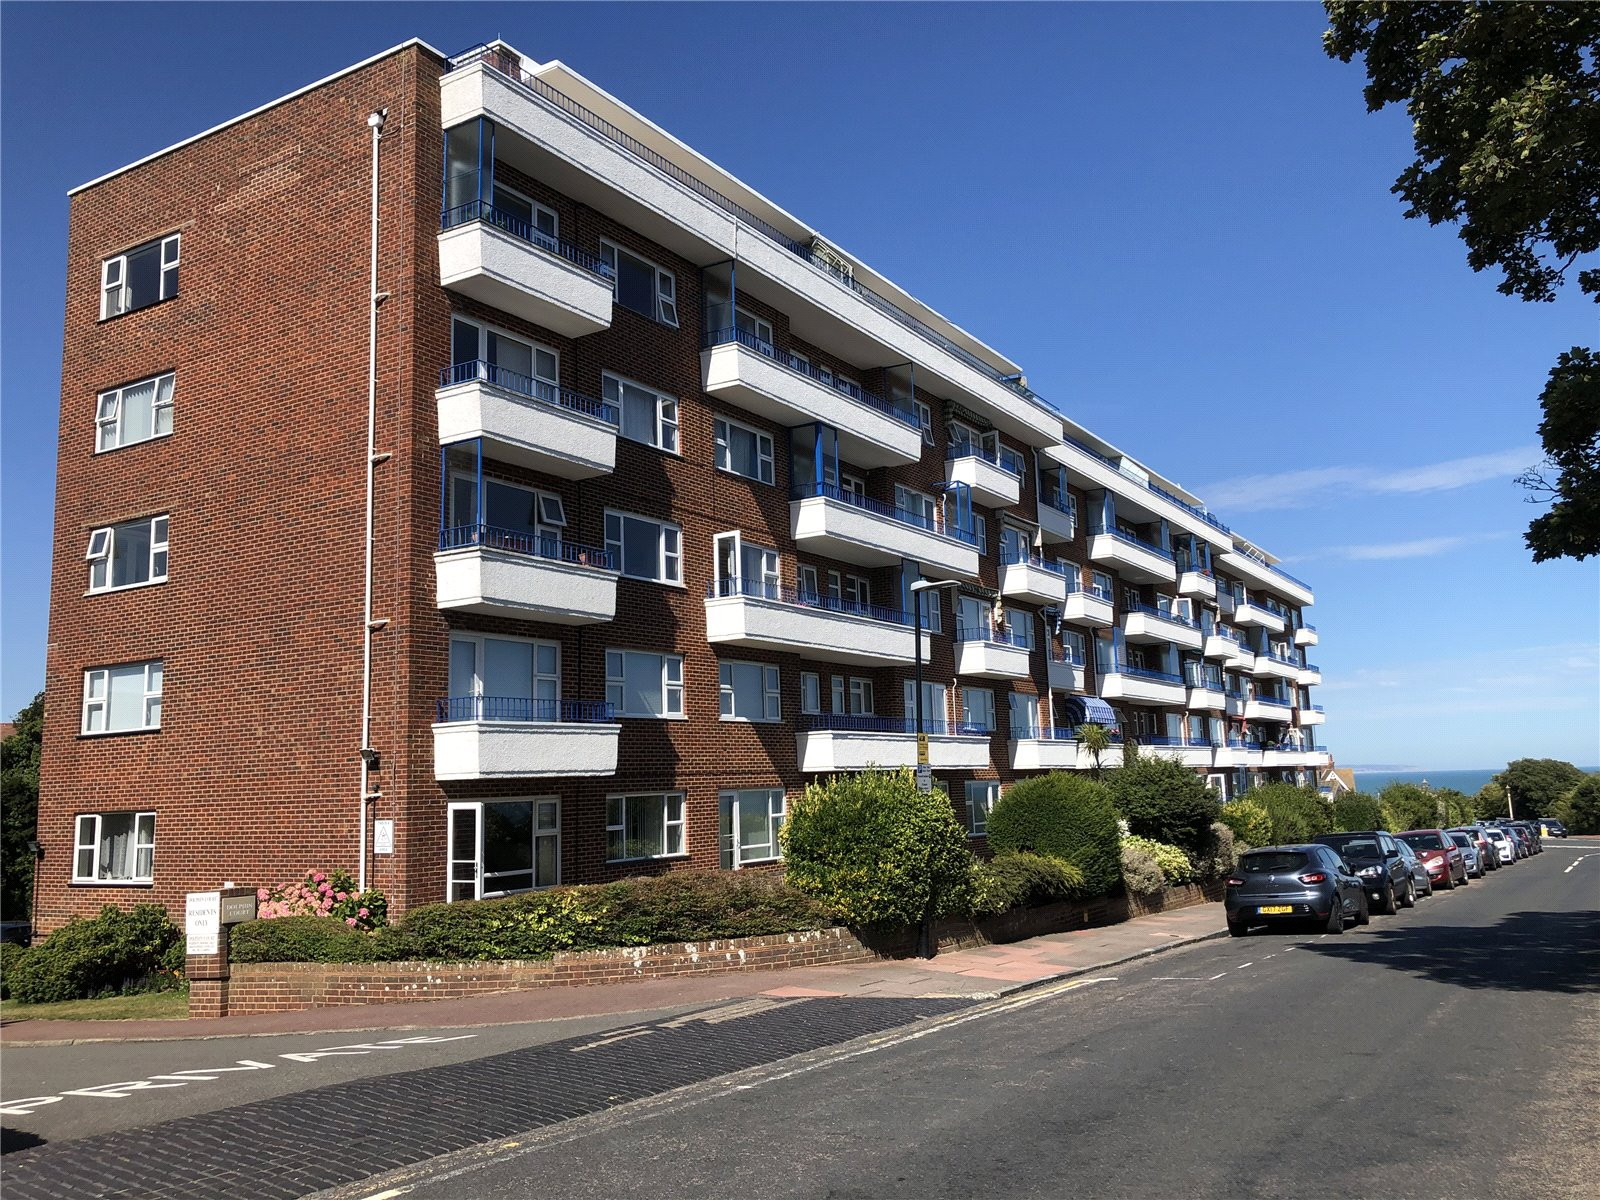 Dolphin Court, Cliff Road